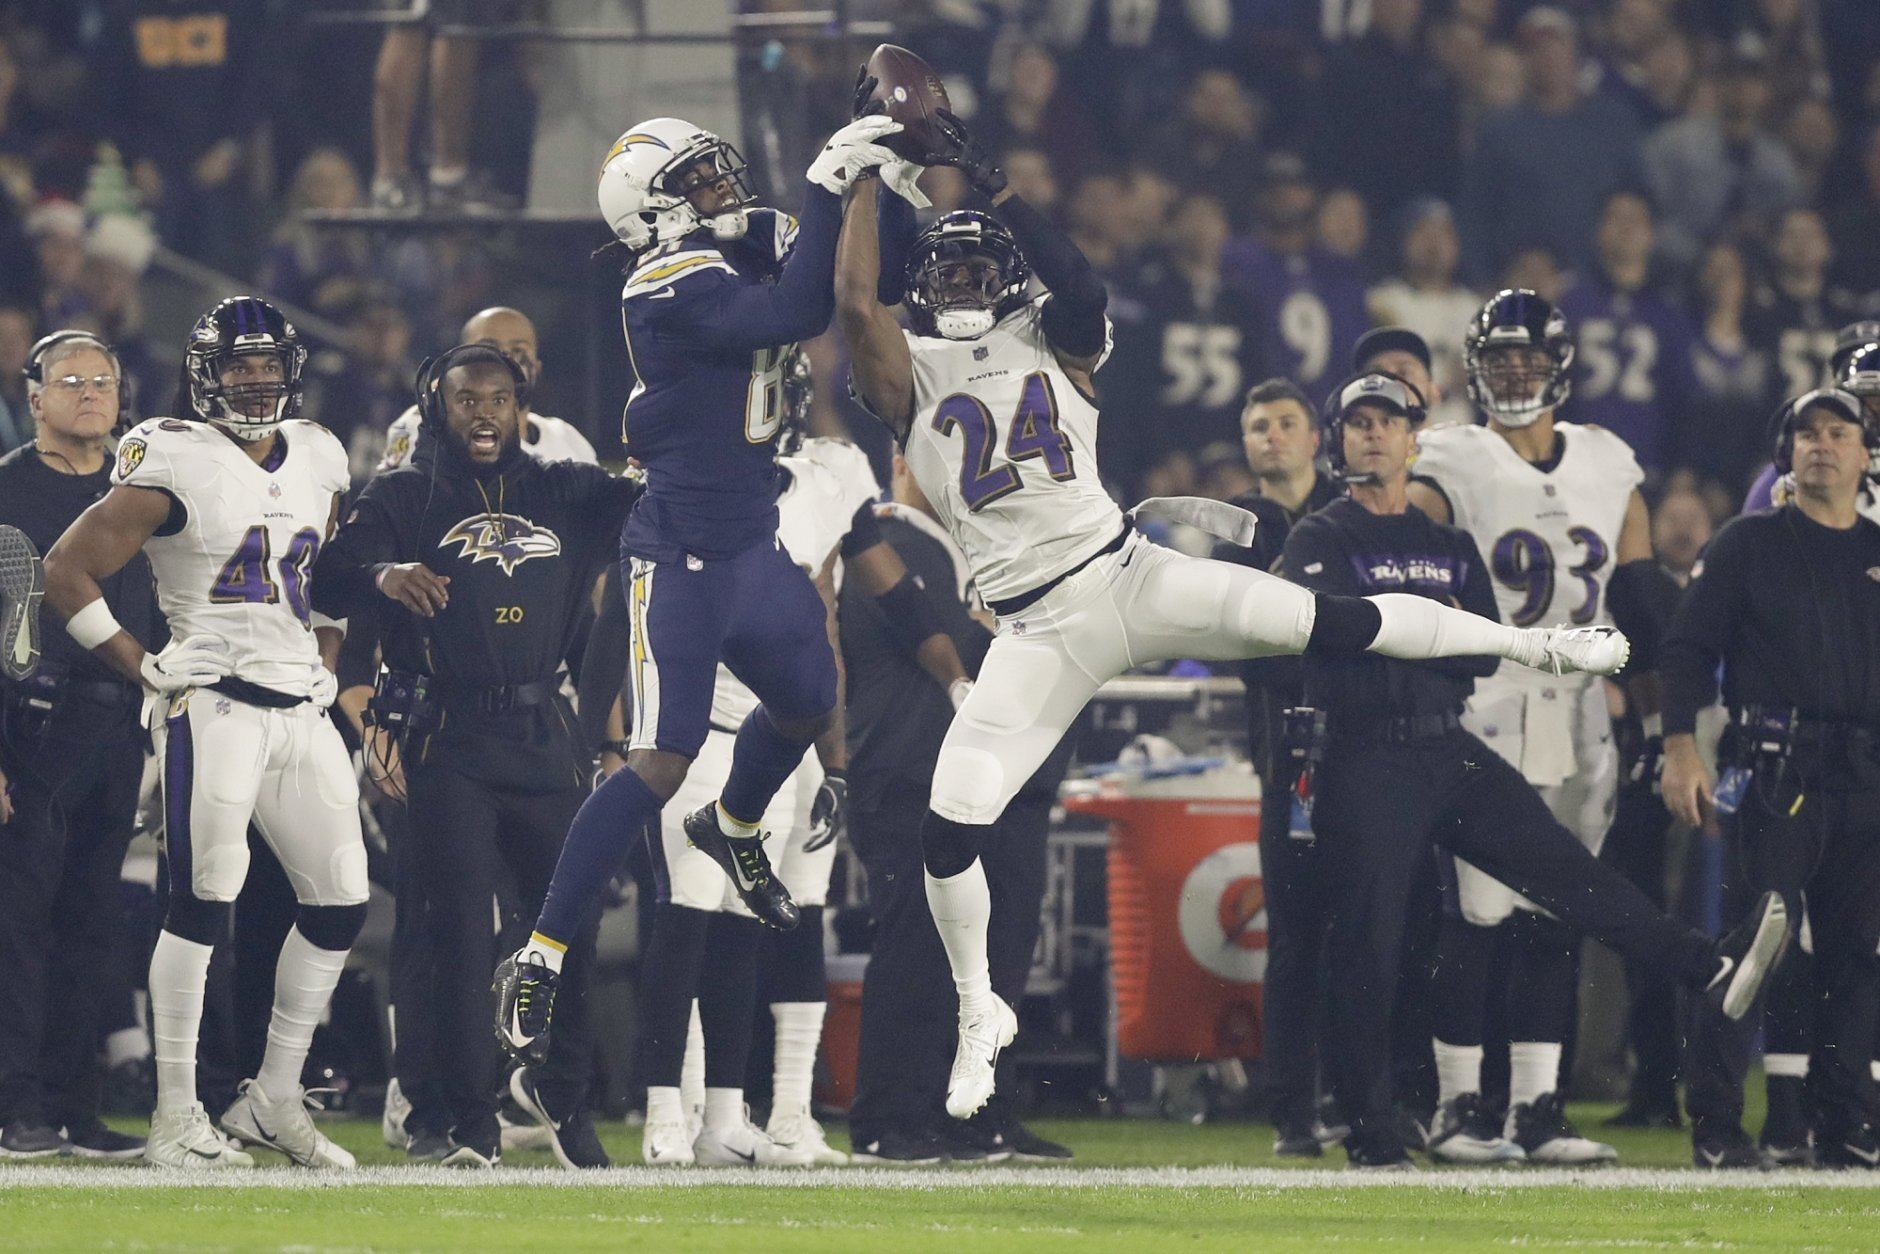 Baltimore Ravens cornerback Brandon Carr intercepts a passes intended for Los Angeles Chargers wide receiver Mike Williams during the first half in an NFL football game Saturday, Dec. 22, 2018, in Carson, Calif. (AP Photo/Marcio Jose Sanchez)